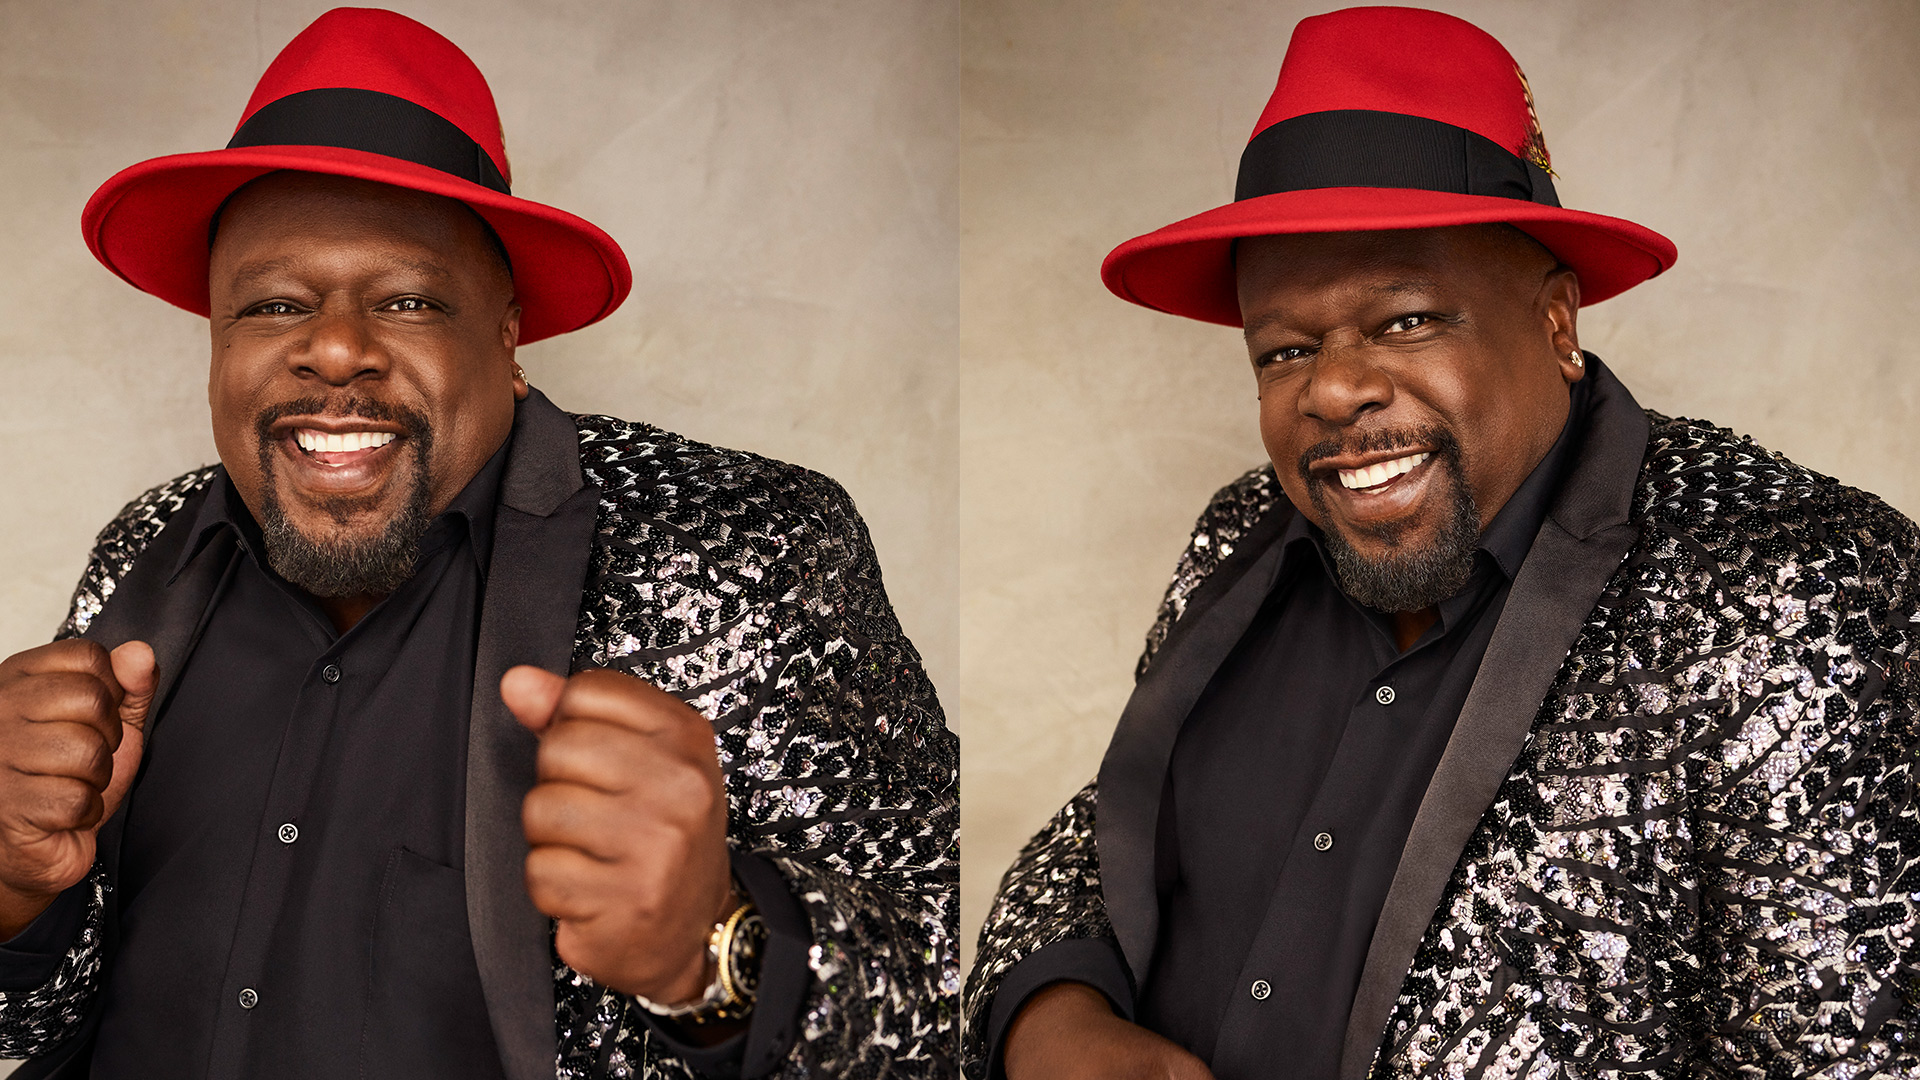 Cedric the Entertainer shines and sparkles